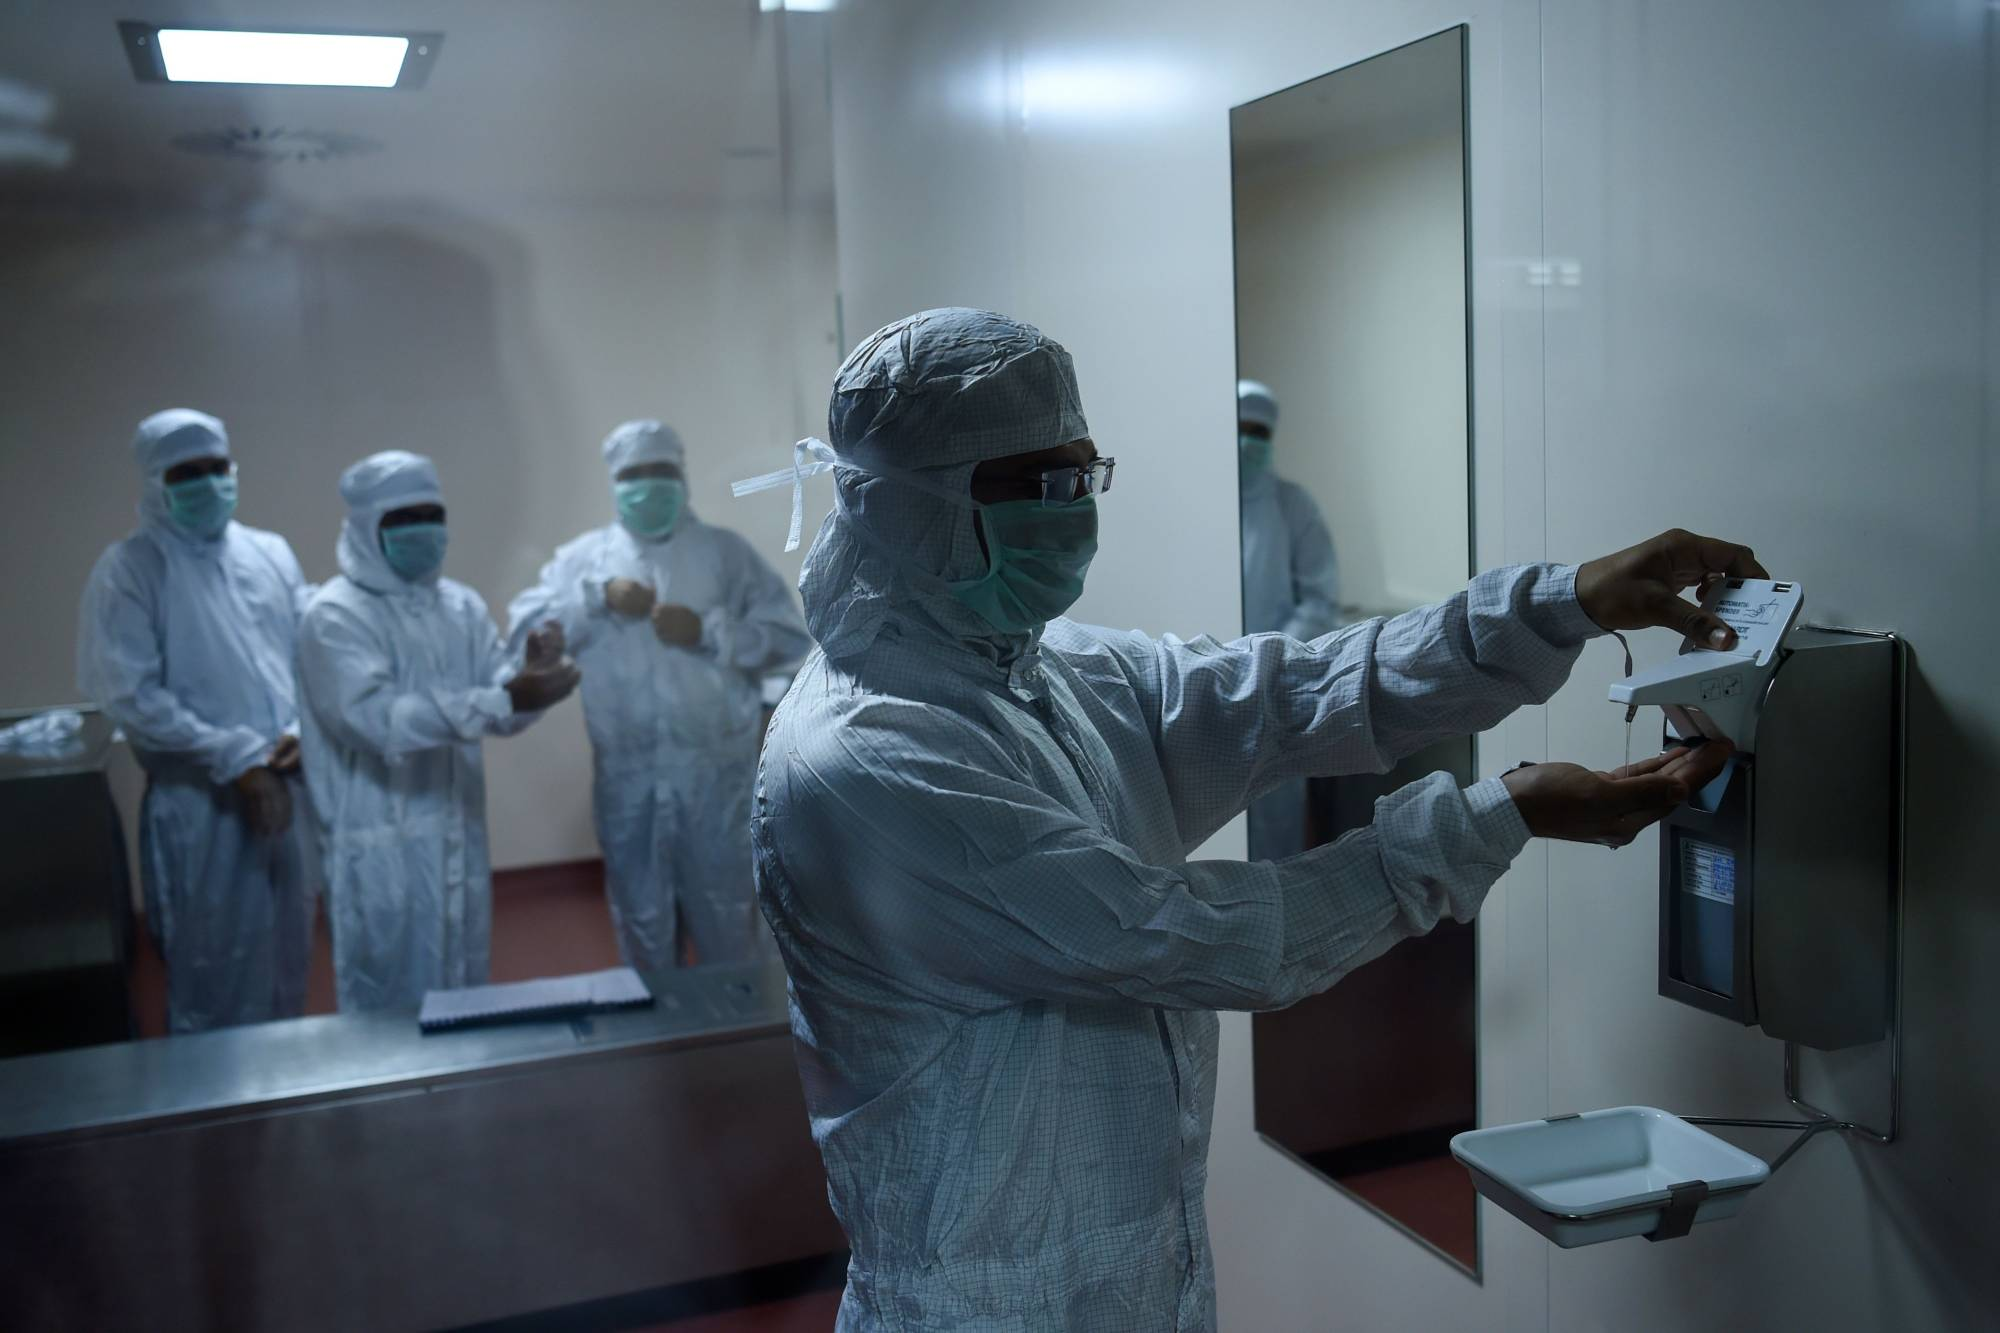 Employees prepare themselves before entering a lab where the Covishield vaccine is being manufactured, at India's Serum Institute in Pune on Friday.  | AFP-JIJI